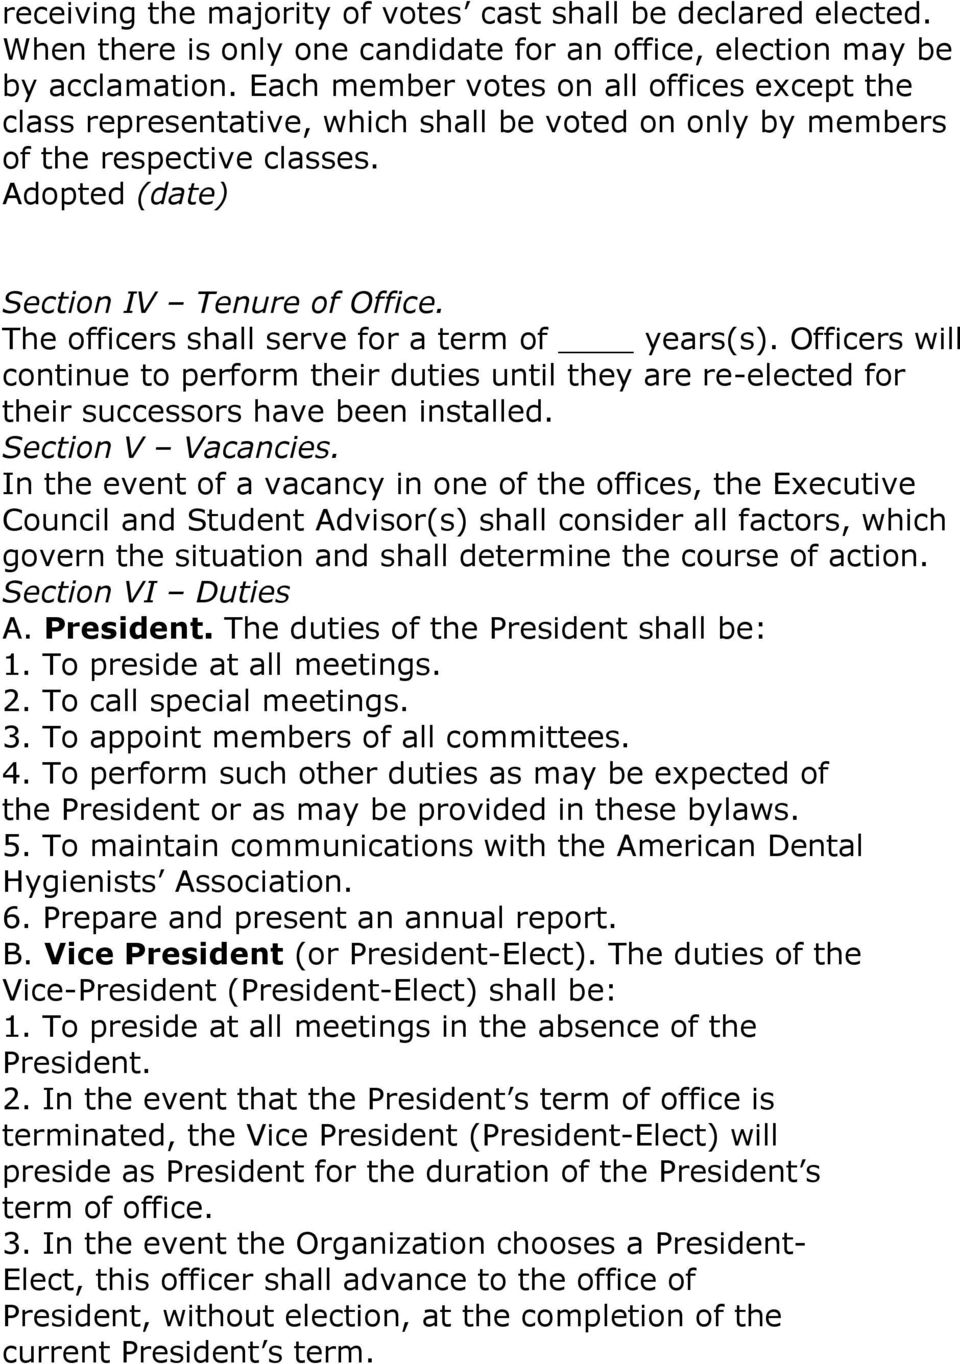 The officers shall serve for a term of years(s). Officers will continue to perform their duties until they are re-elected for their successors have been installed. Section V Vacancies.